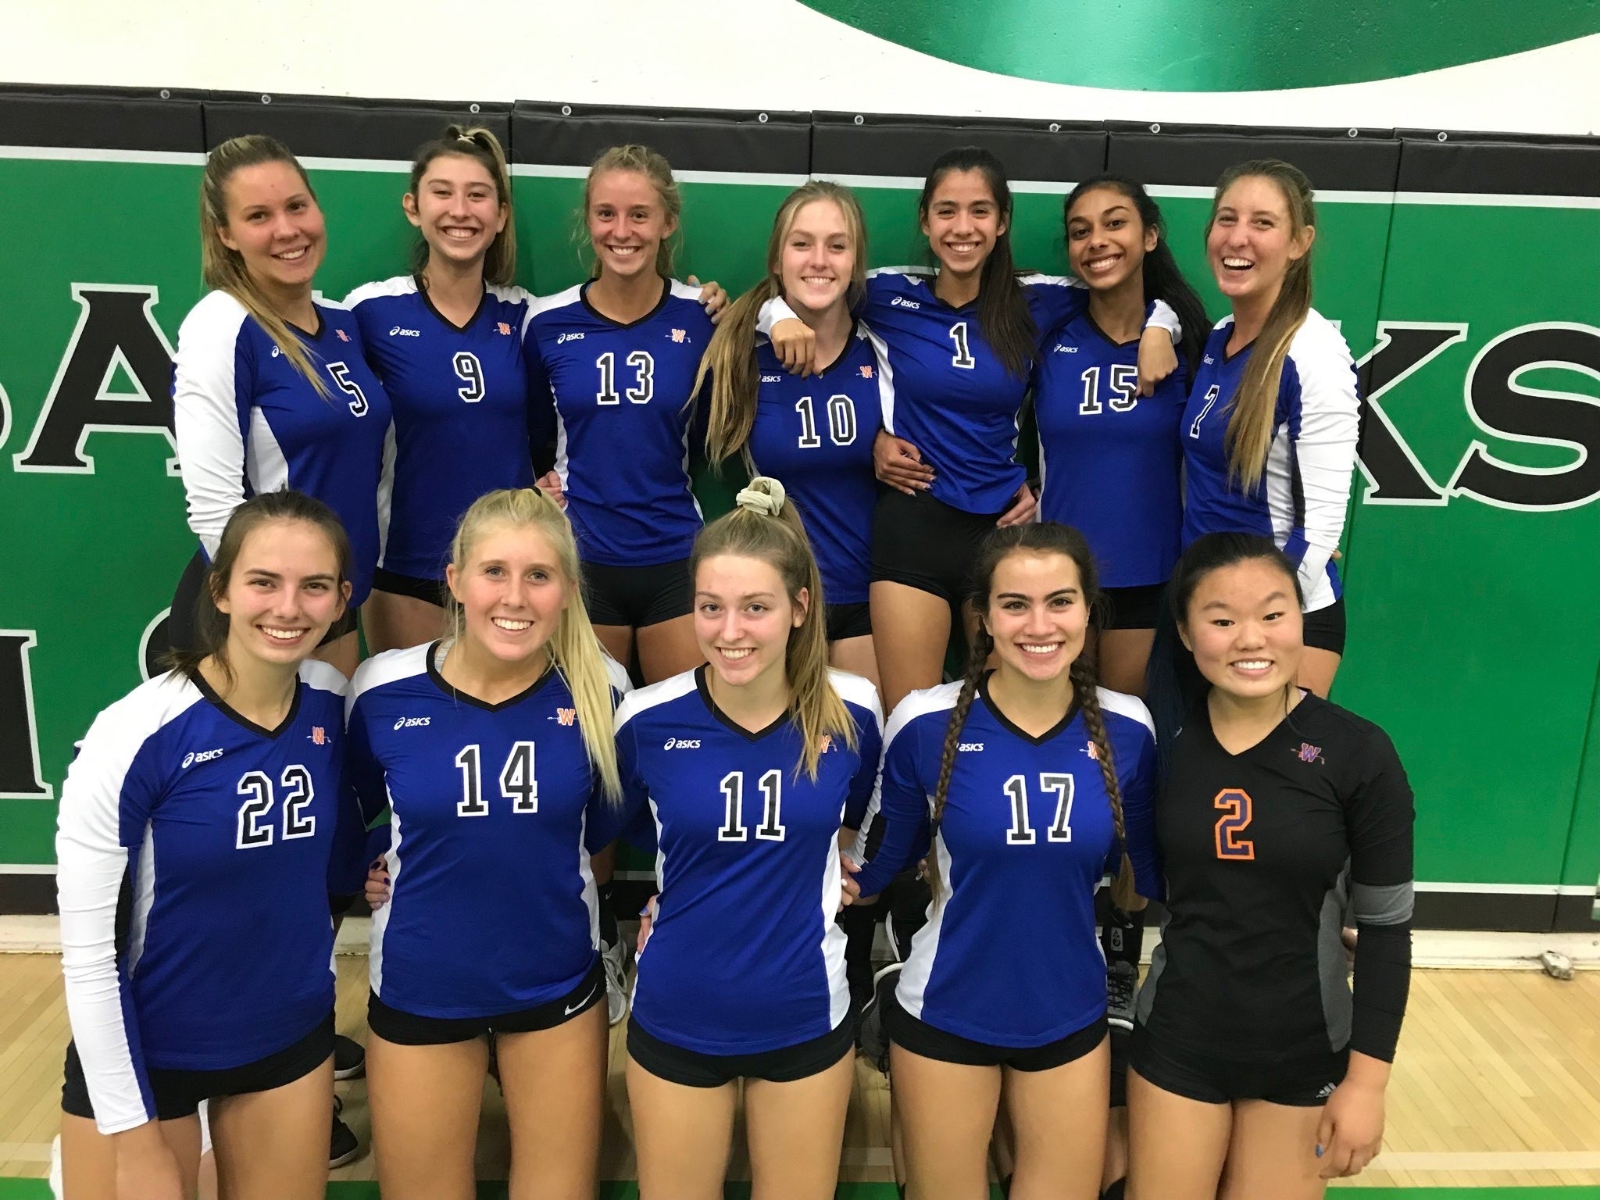 WHS Girls' Volleyball CHAMPIONS Again!